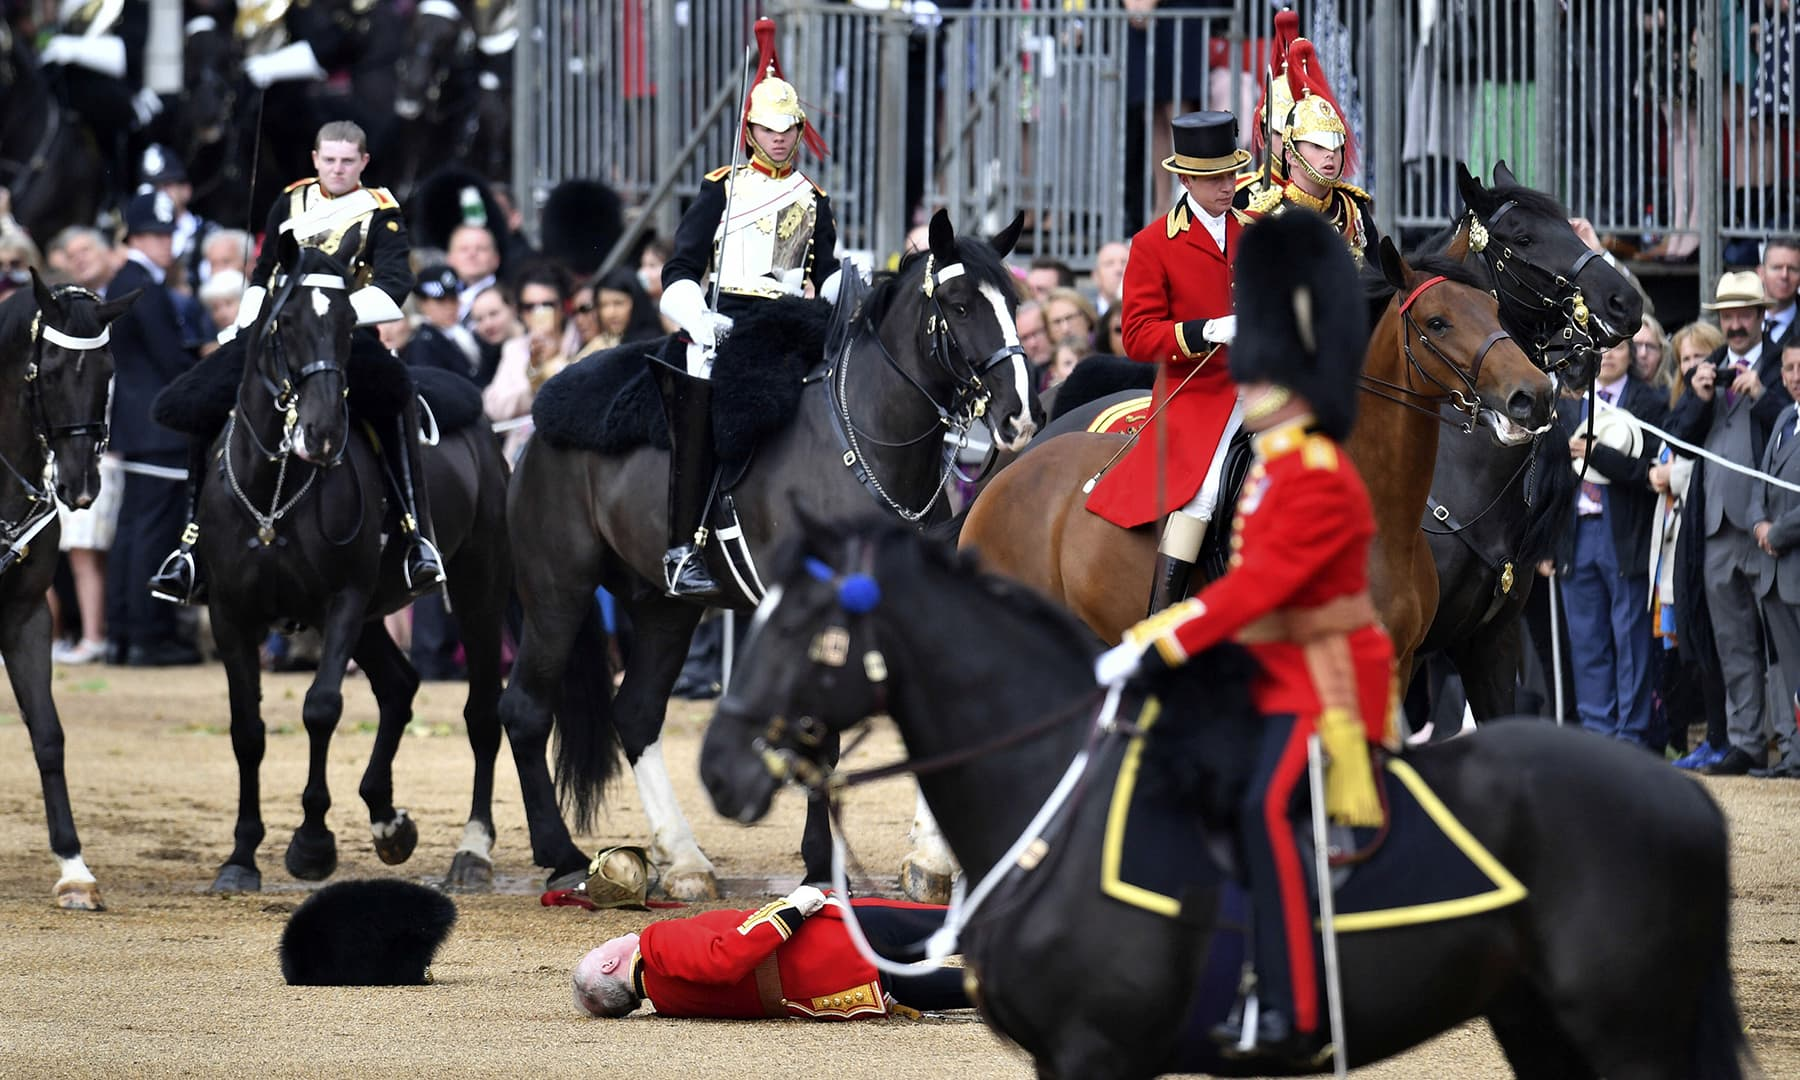 A soldier falls from his horse during the annual Trooping the Colour Ceremony in London. — AP